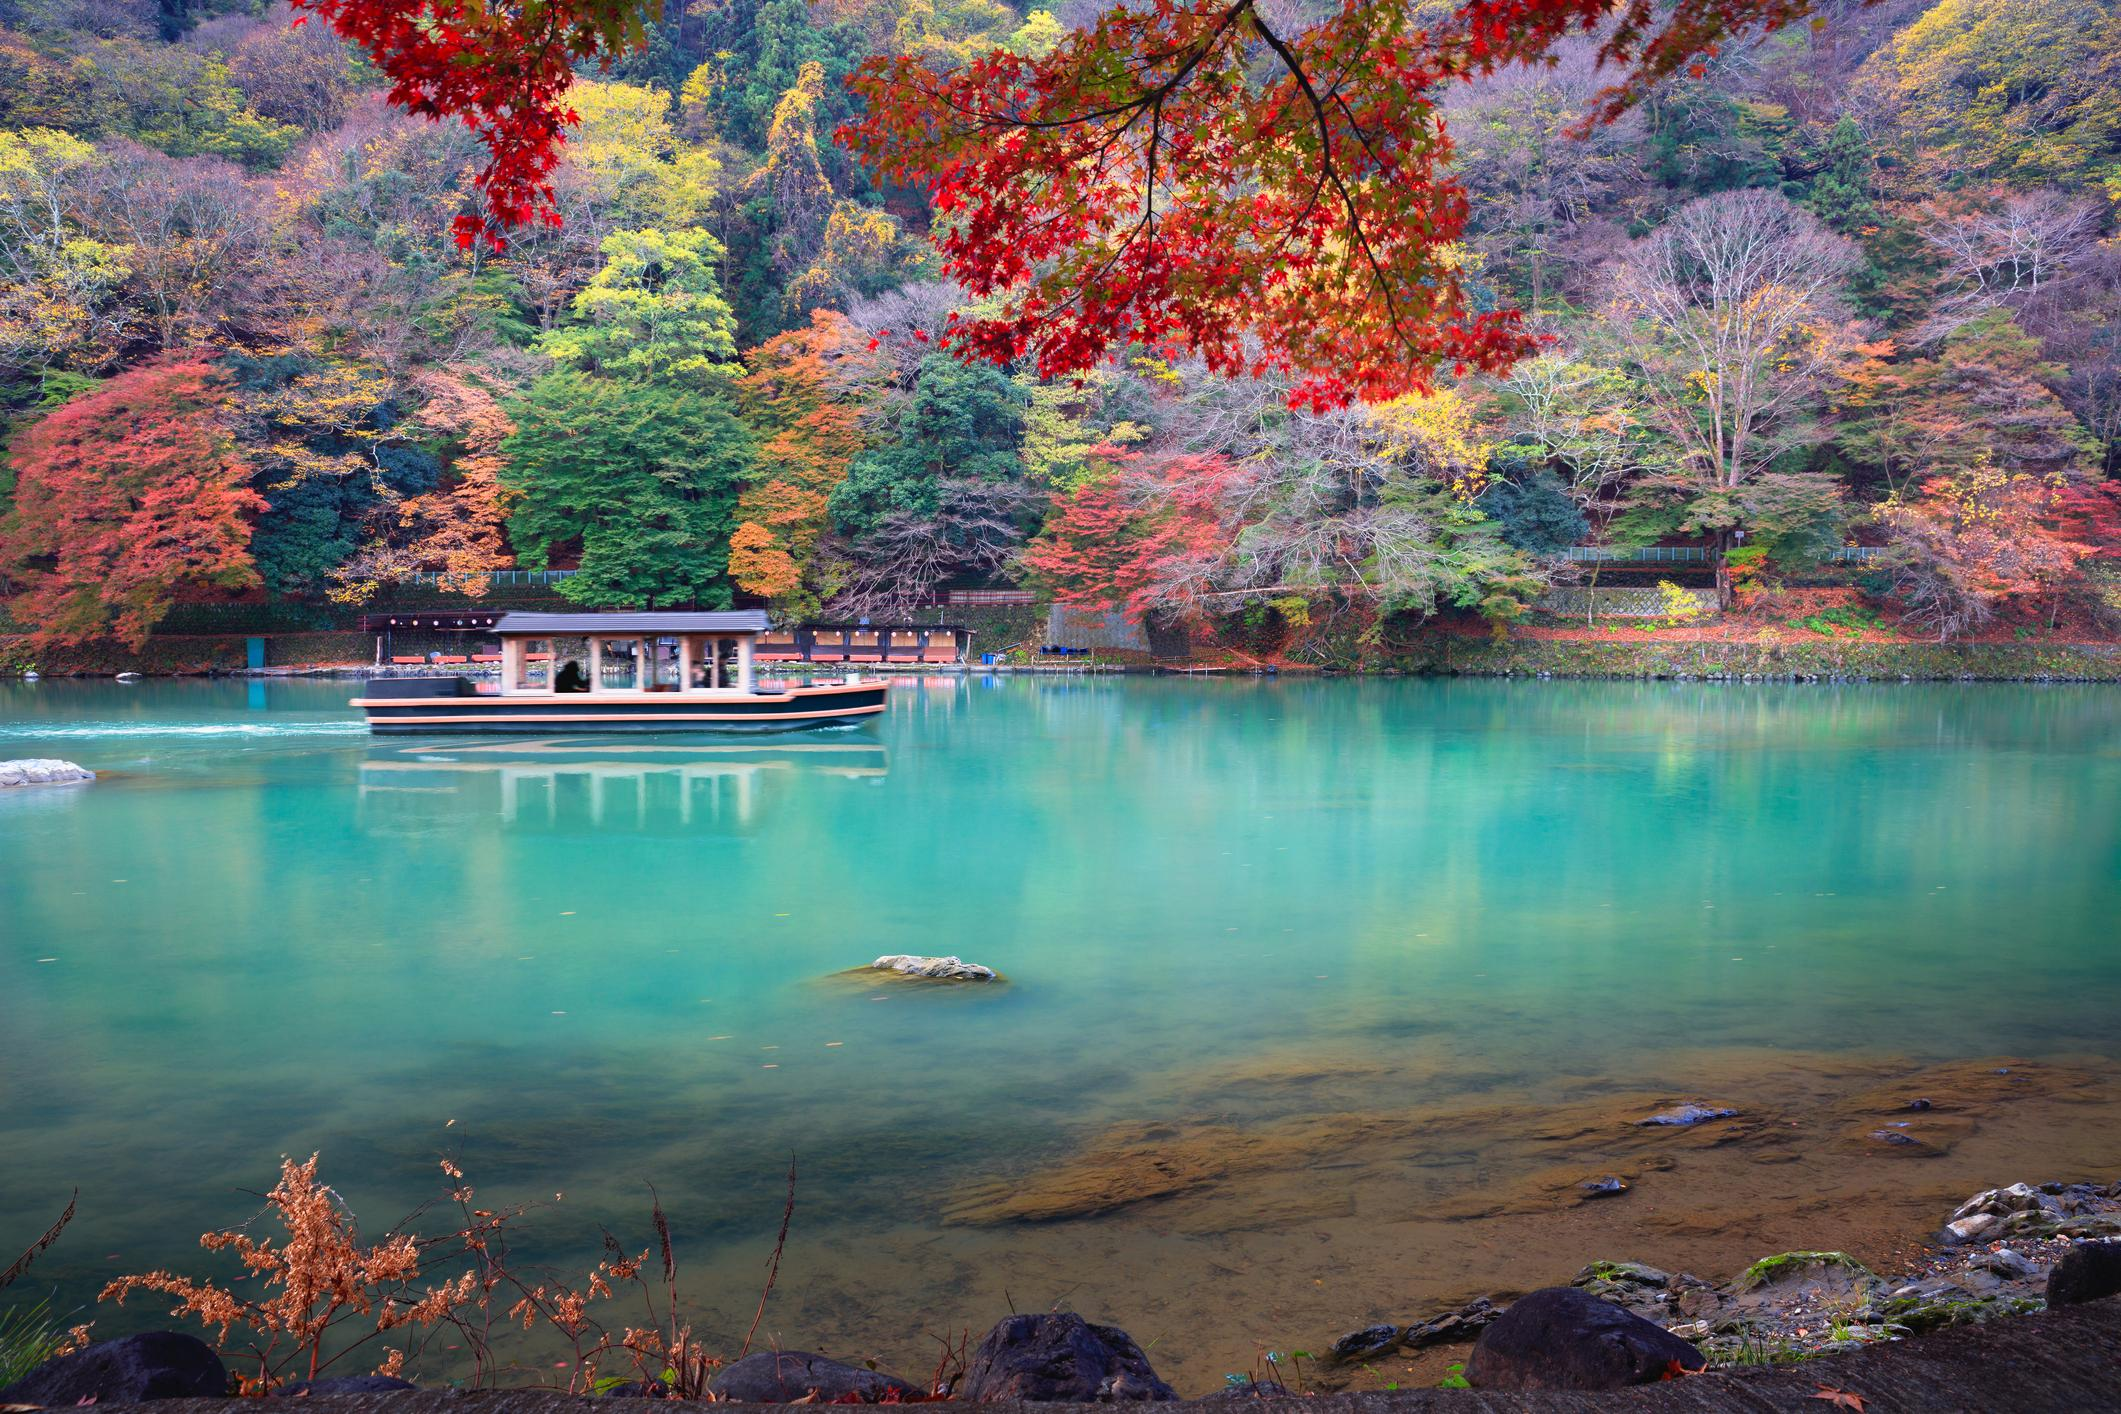 The Katsura River in the autumn, Japan.